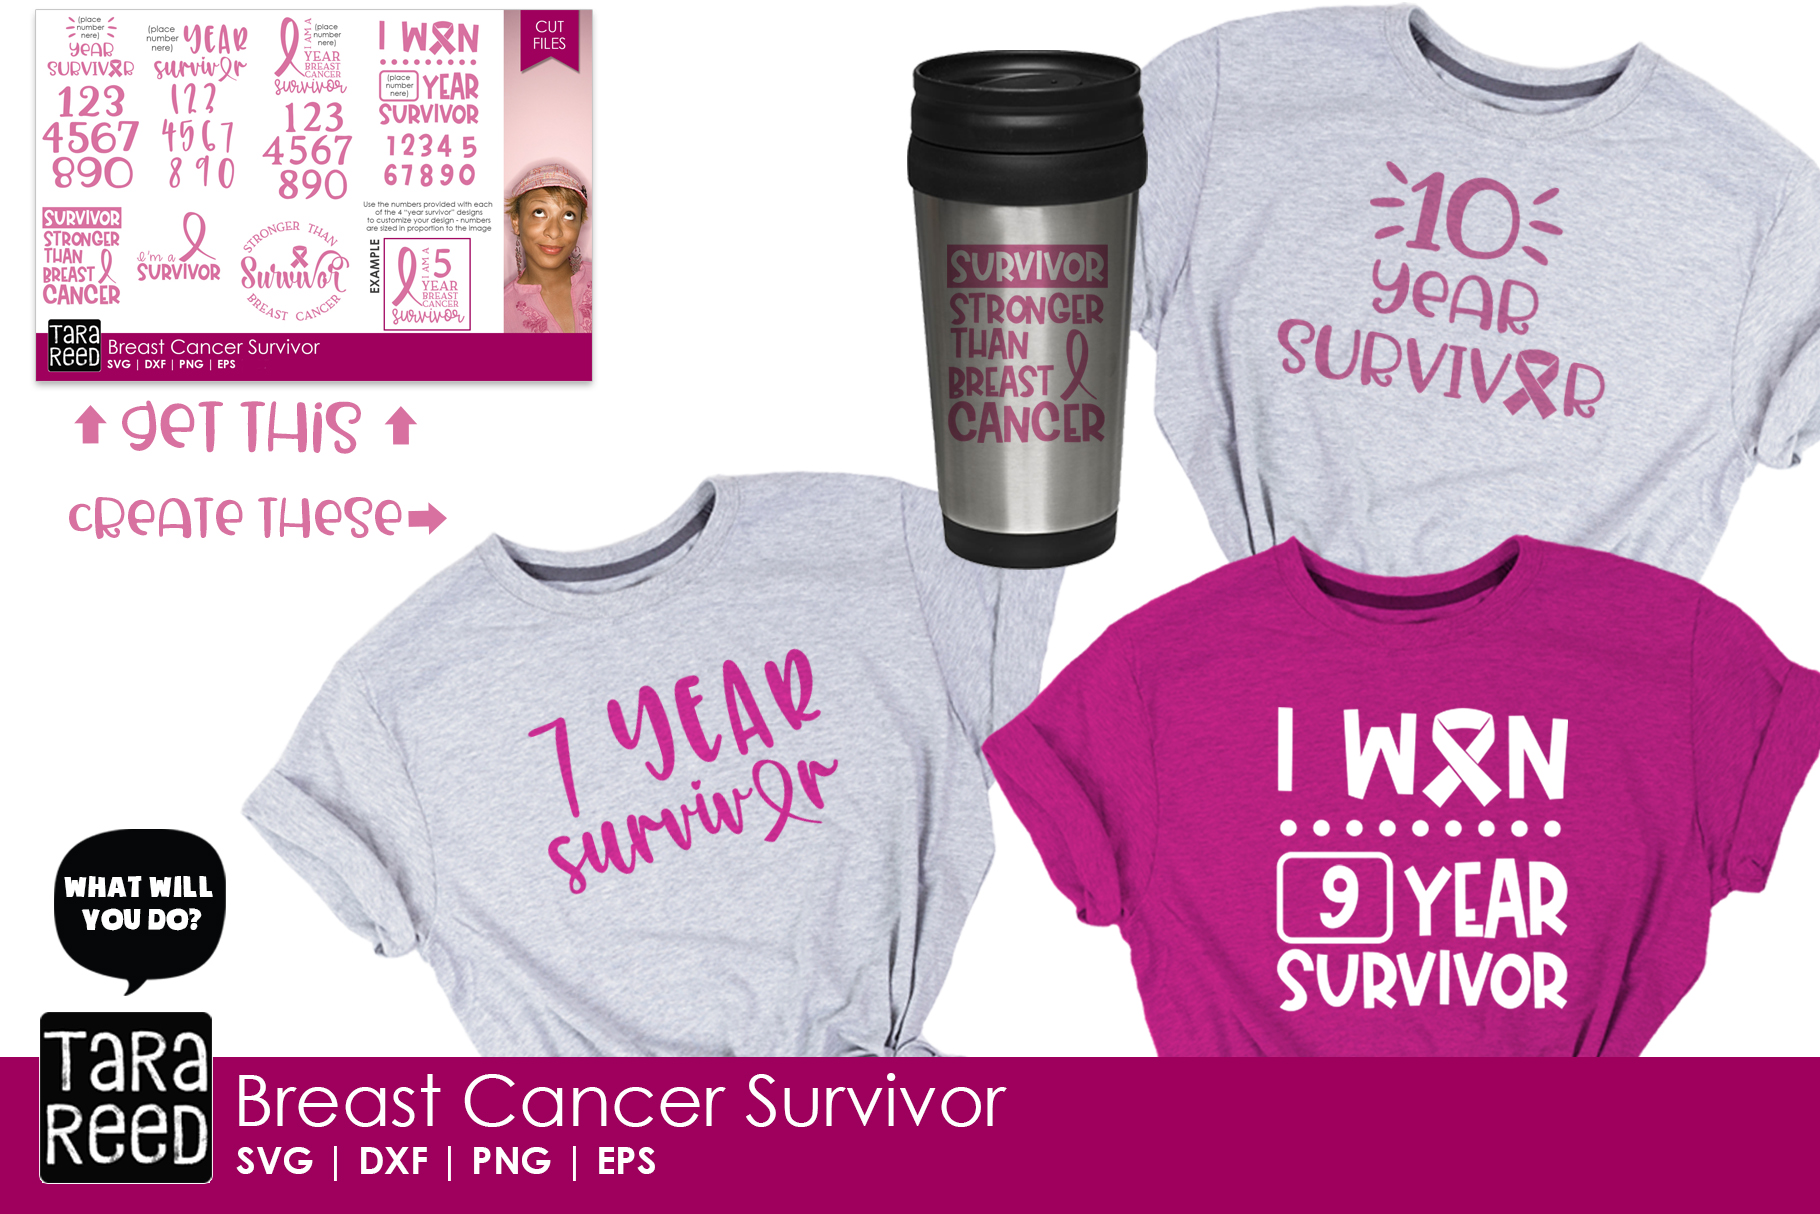 Breast Cancer Survivor Bundle example image 2